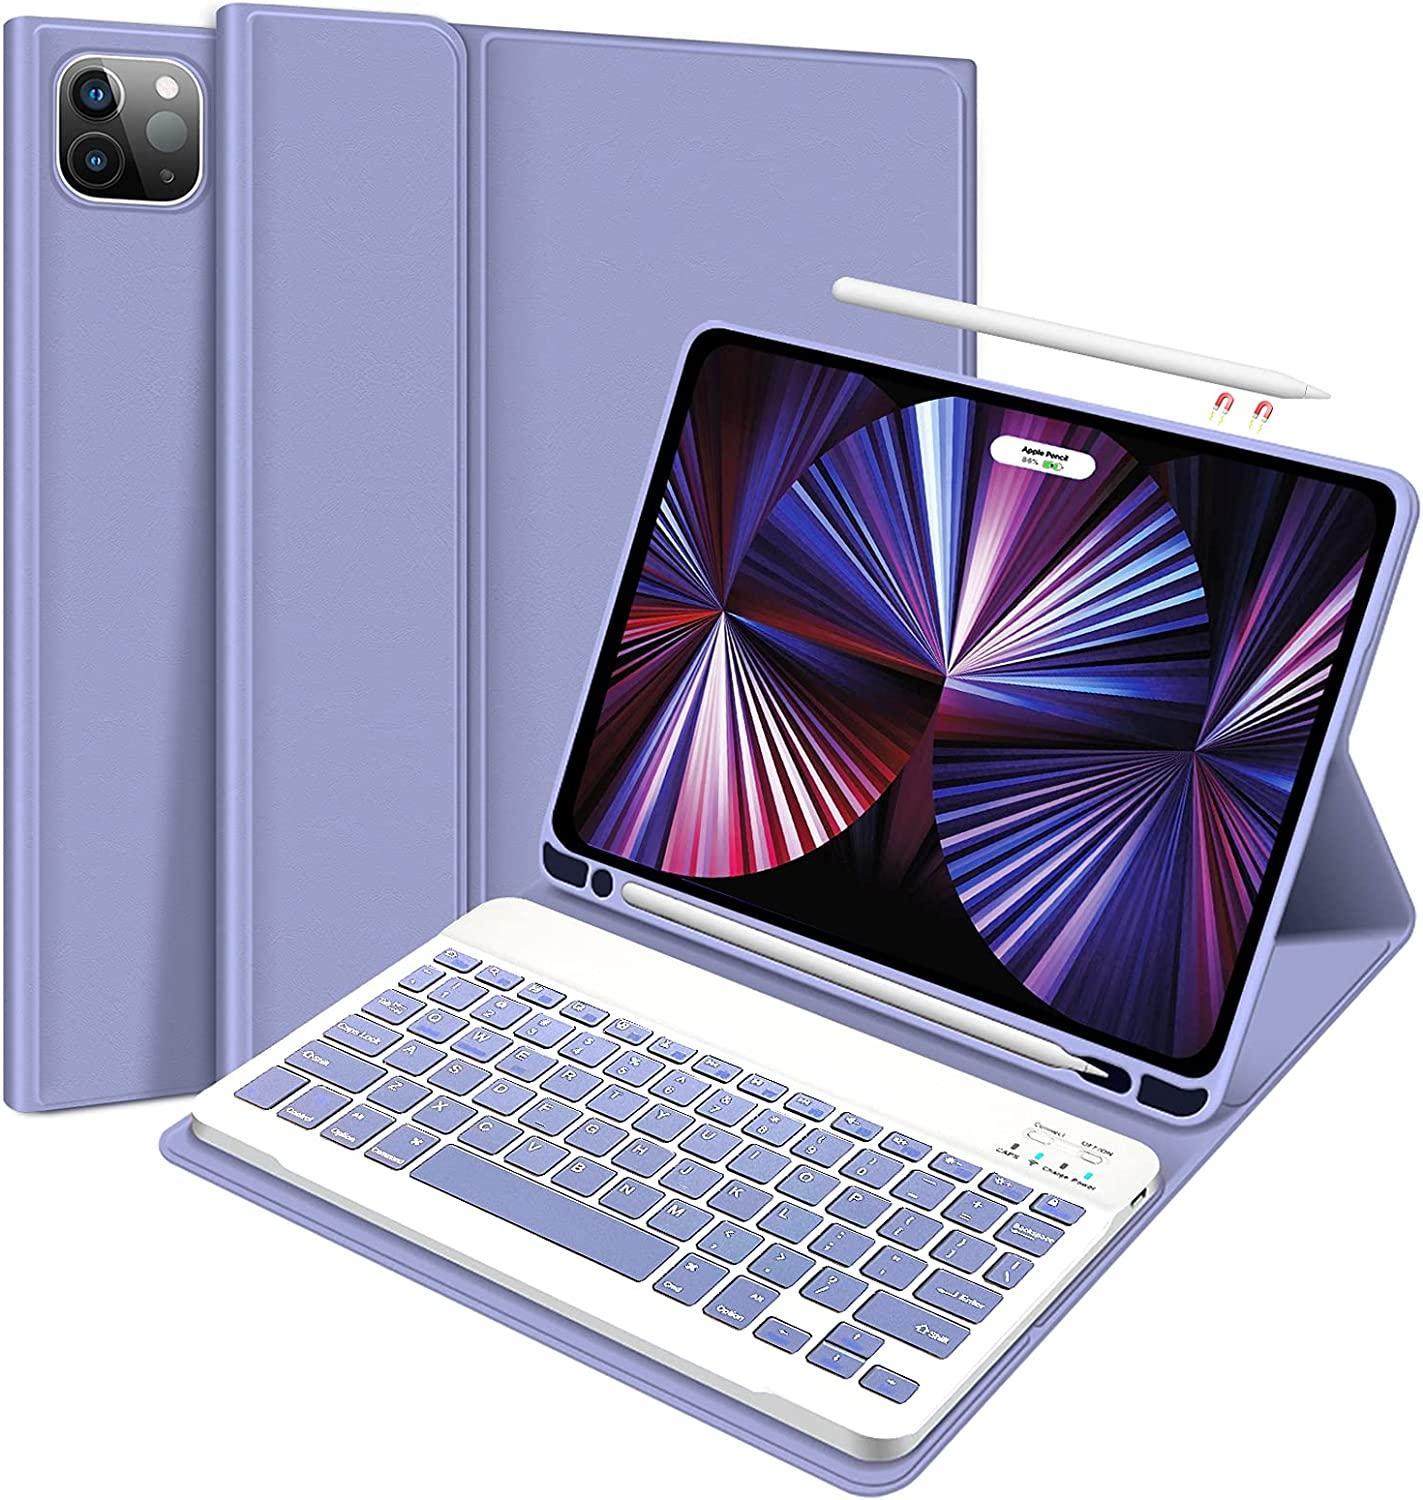 2021 iPad Pro 11 Case with Keyboard - Case for iPad Pro 11 2020&2021 (2nd/3rd Generation) with Detachable Wireless Keyboard Pencil Holder- iPad Pro 11 inch case Keyboard for Tablet (Purple)